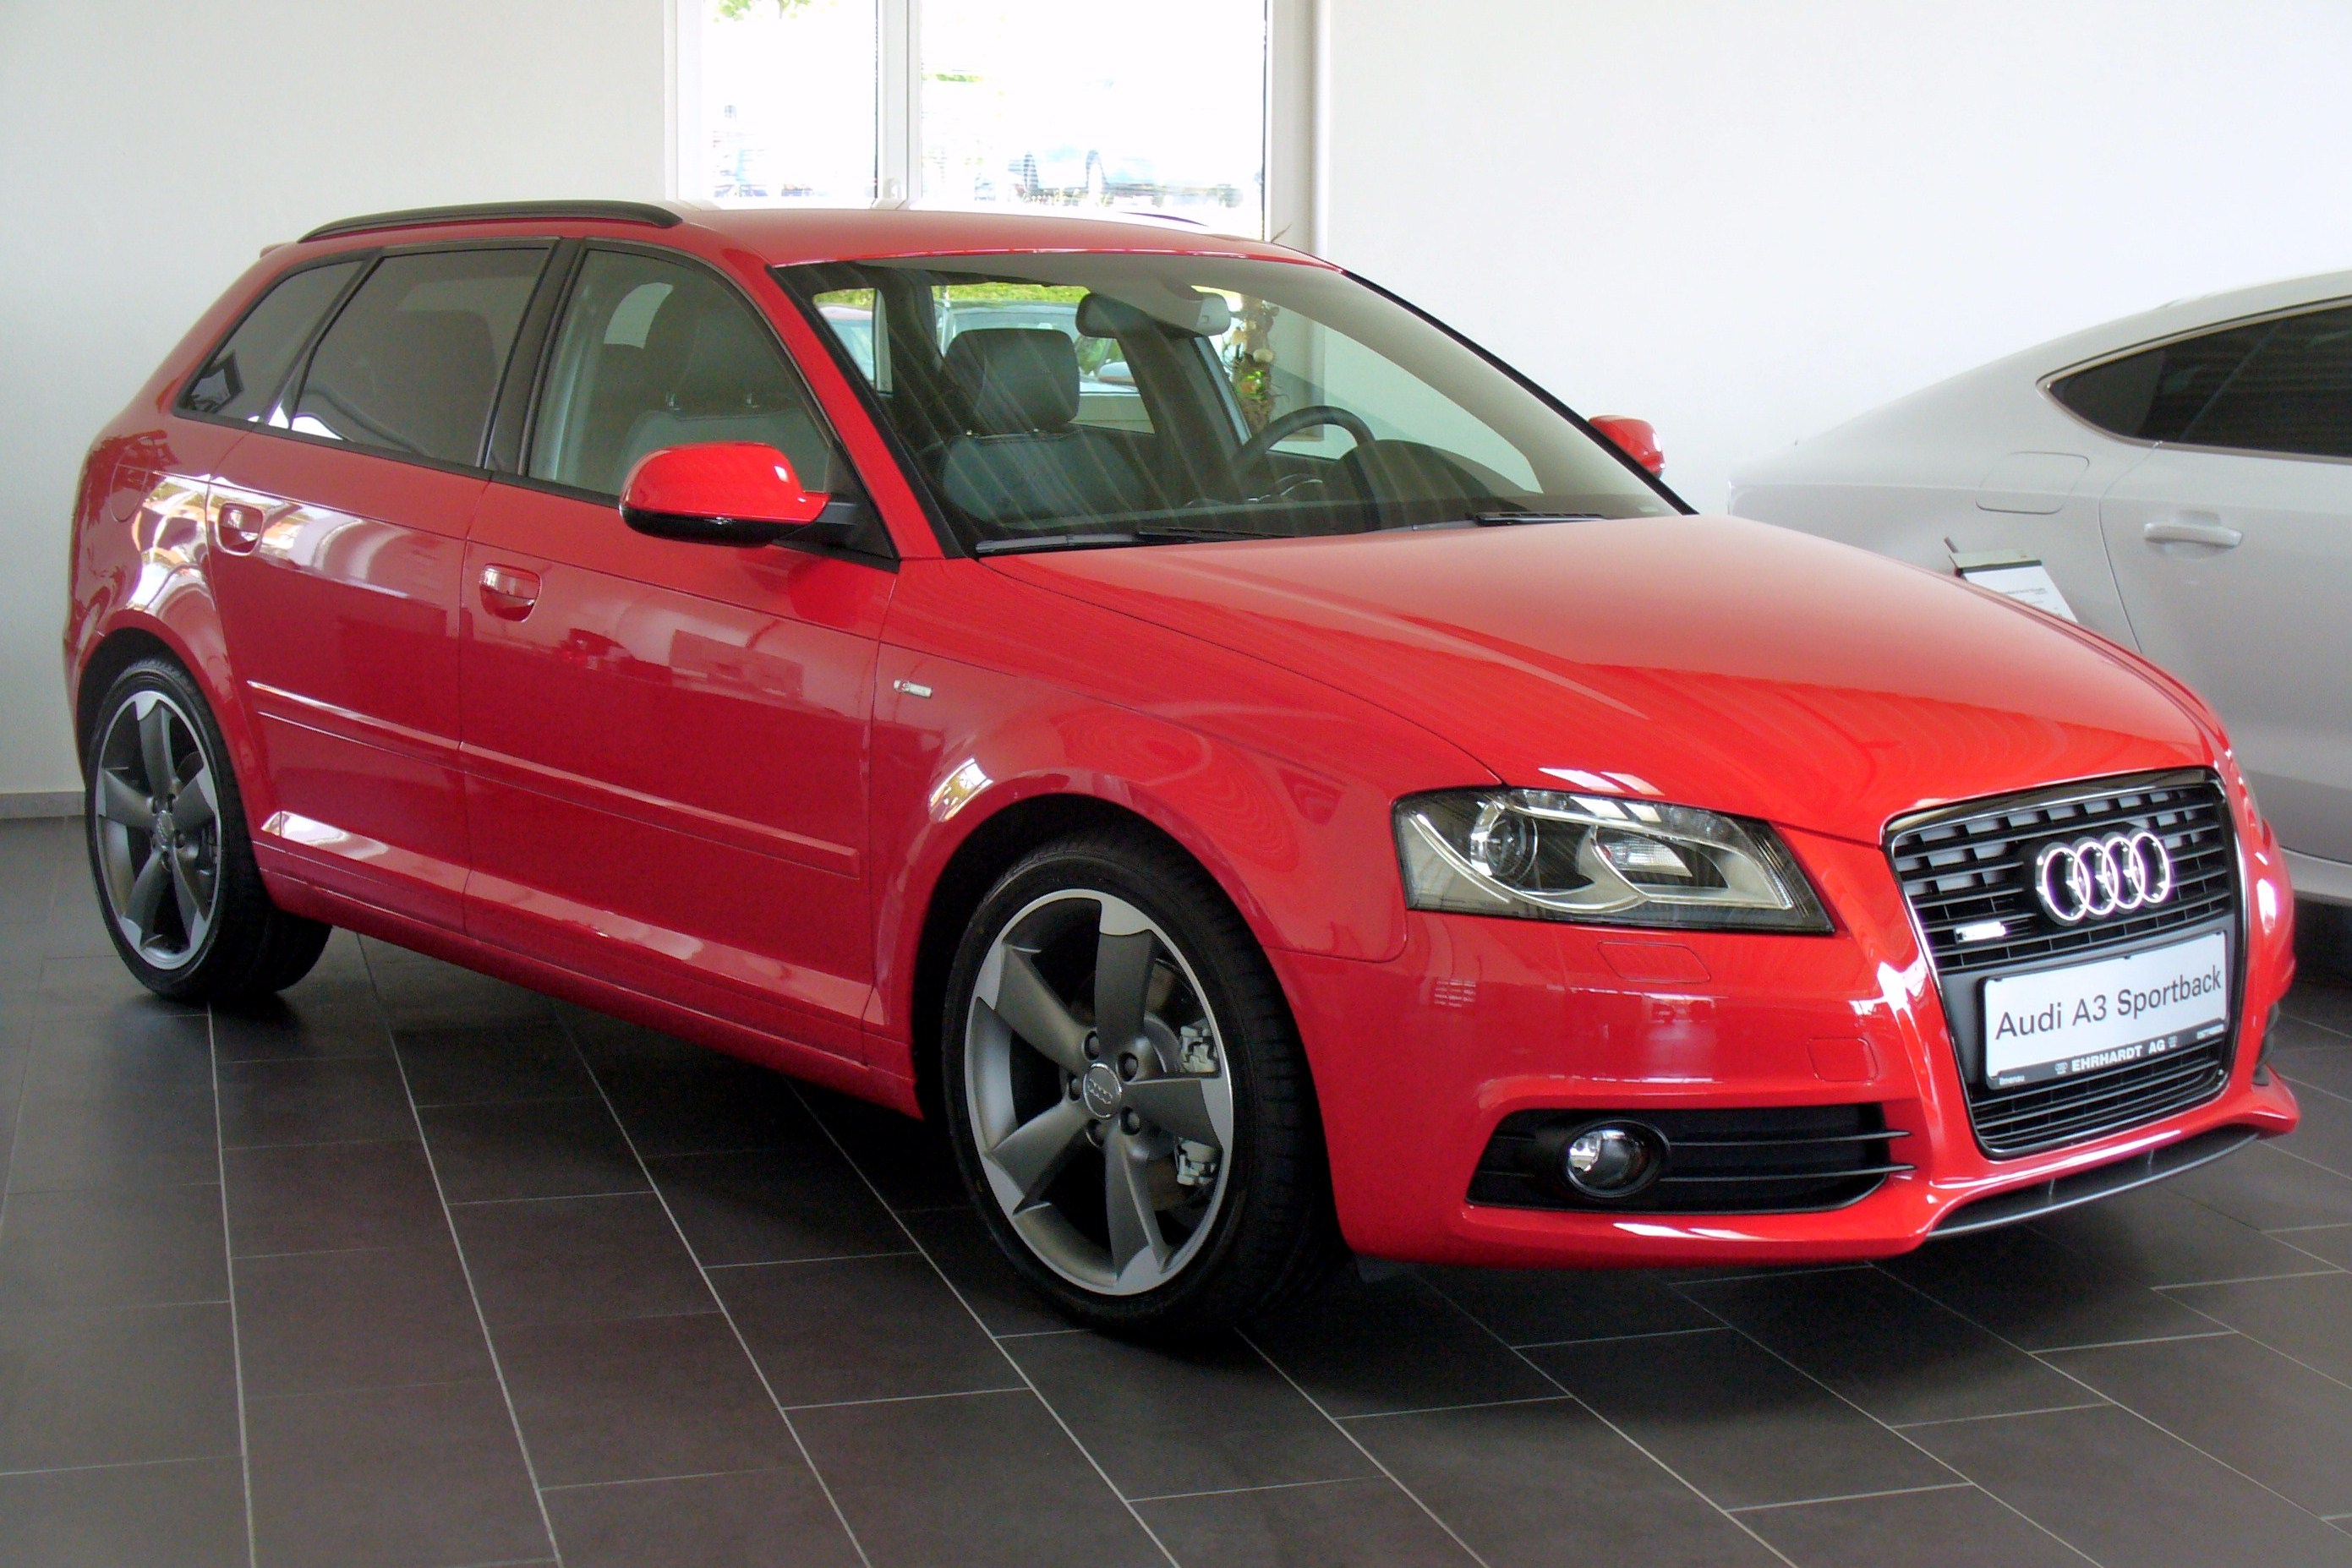 file audi a3 sportback s line 2 0 tdi quattro misanorot. Black Bedroom Furniture Sets. Home Design Ideas